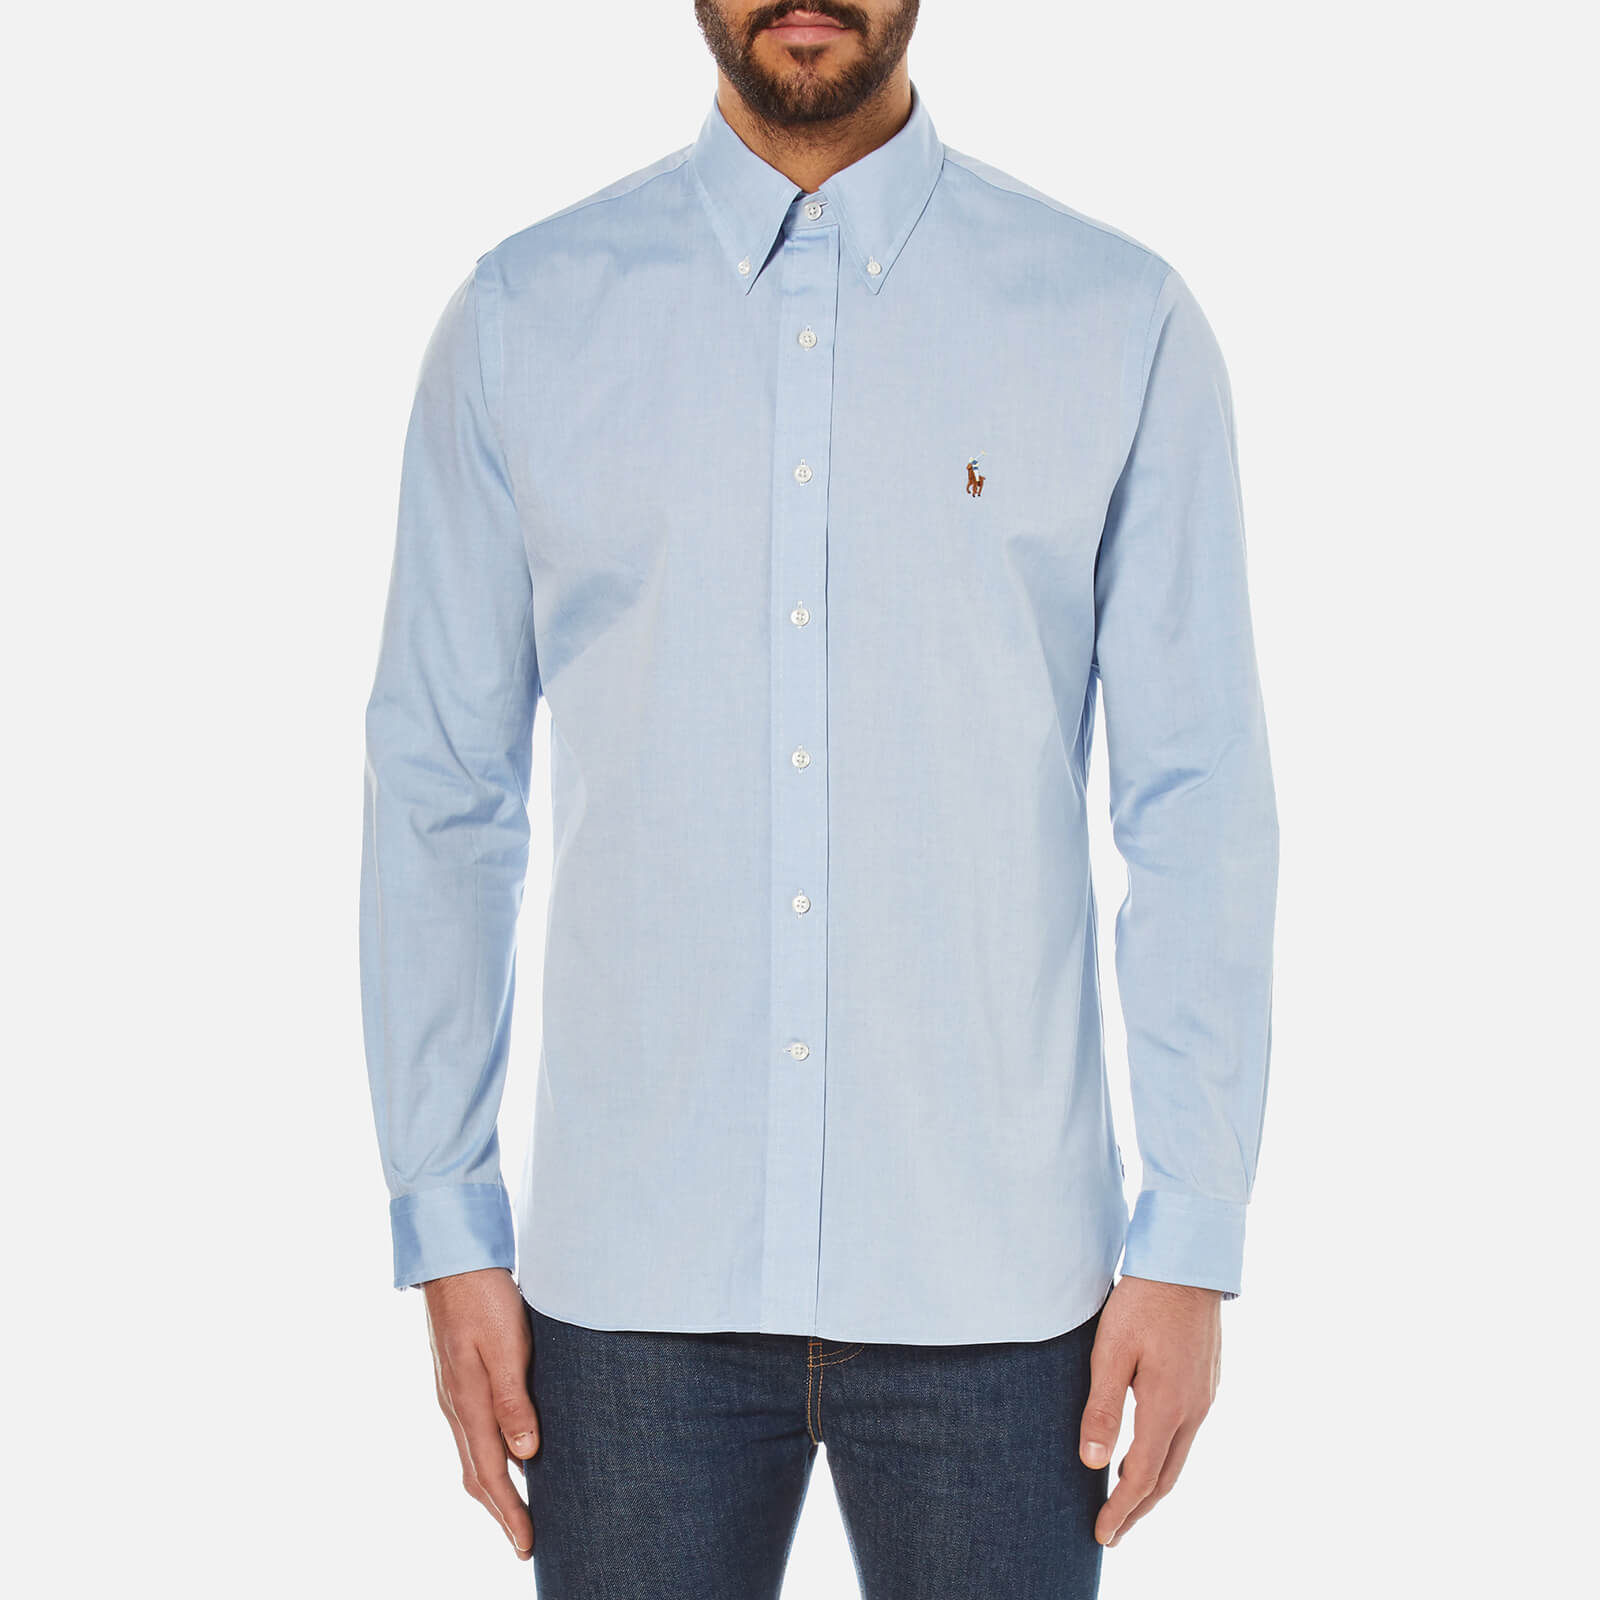 703b90bc Polo Ralph Lauren Men's Custom Fit Button Down Pinpoint Oxford Shirt - Blue  - Free UK Delivery over £50